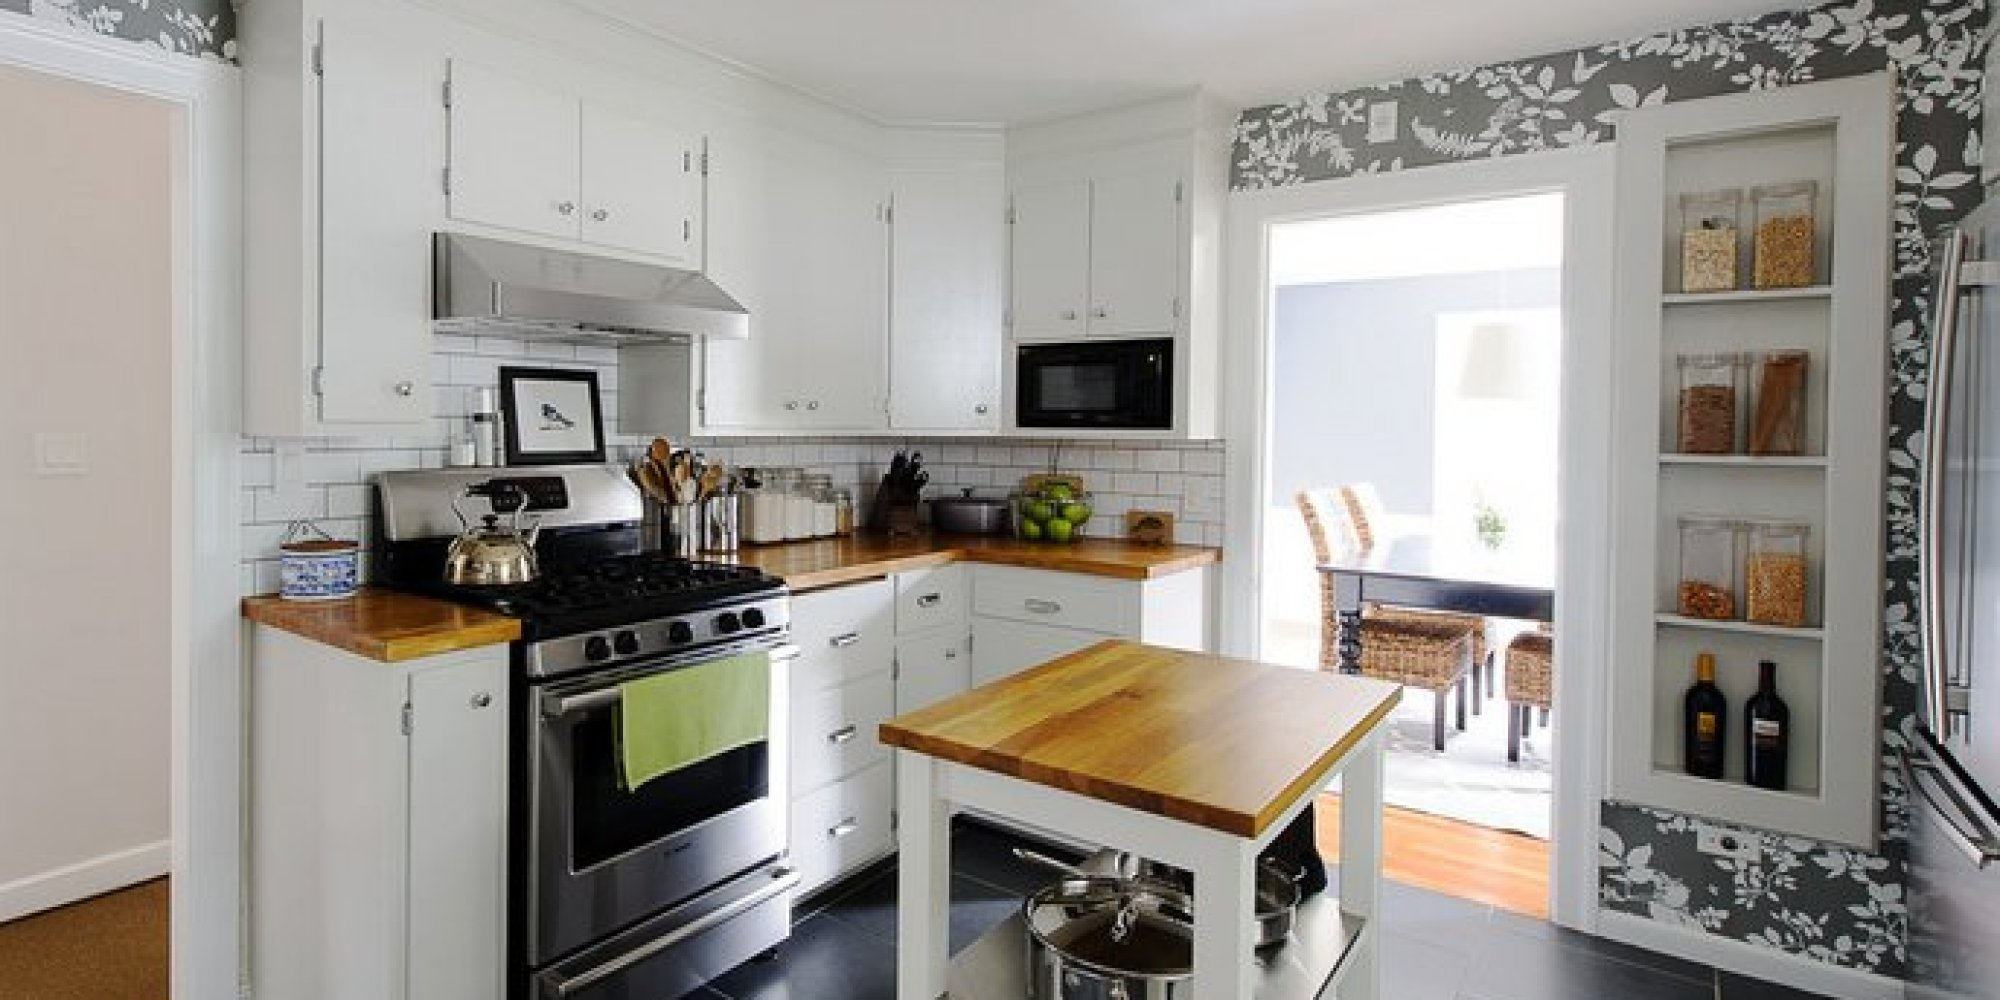 Inexpensive Ways To Fix Up Your Kitchen Photos Huffpost